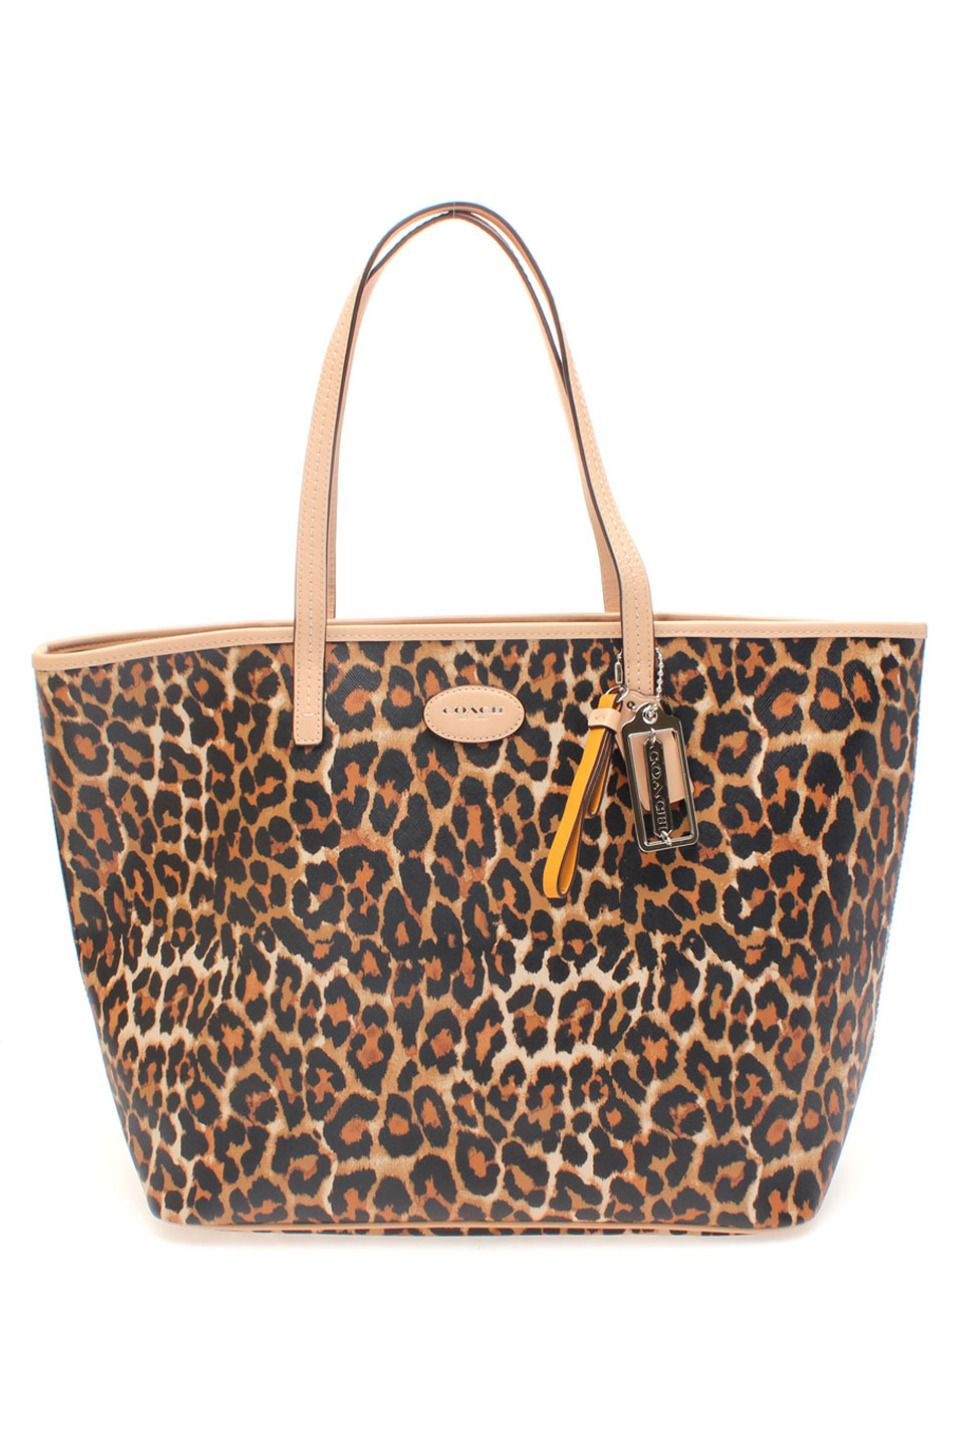 0ff9324ce419 Coach Metro Ocelot Leopard Print Tote - Natural | Bags, Purses, and ...